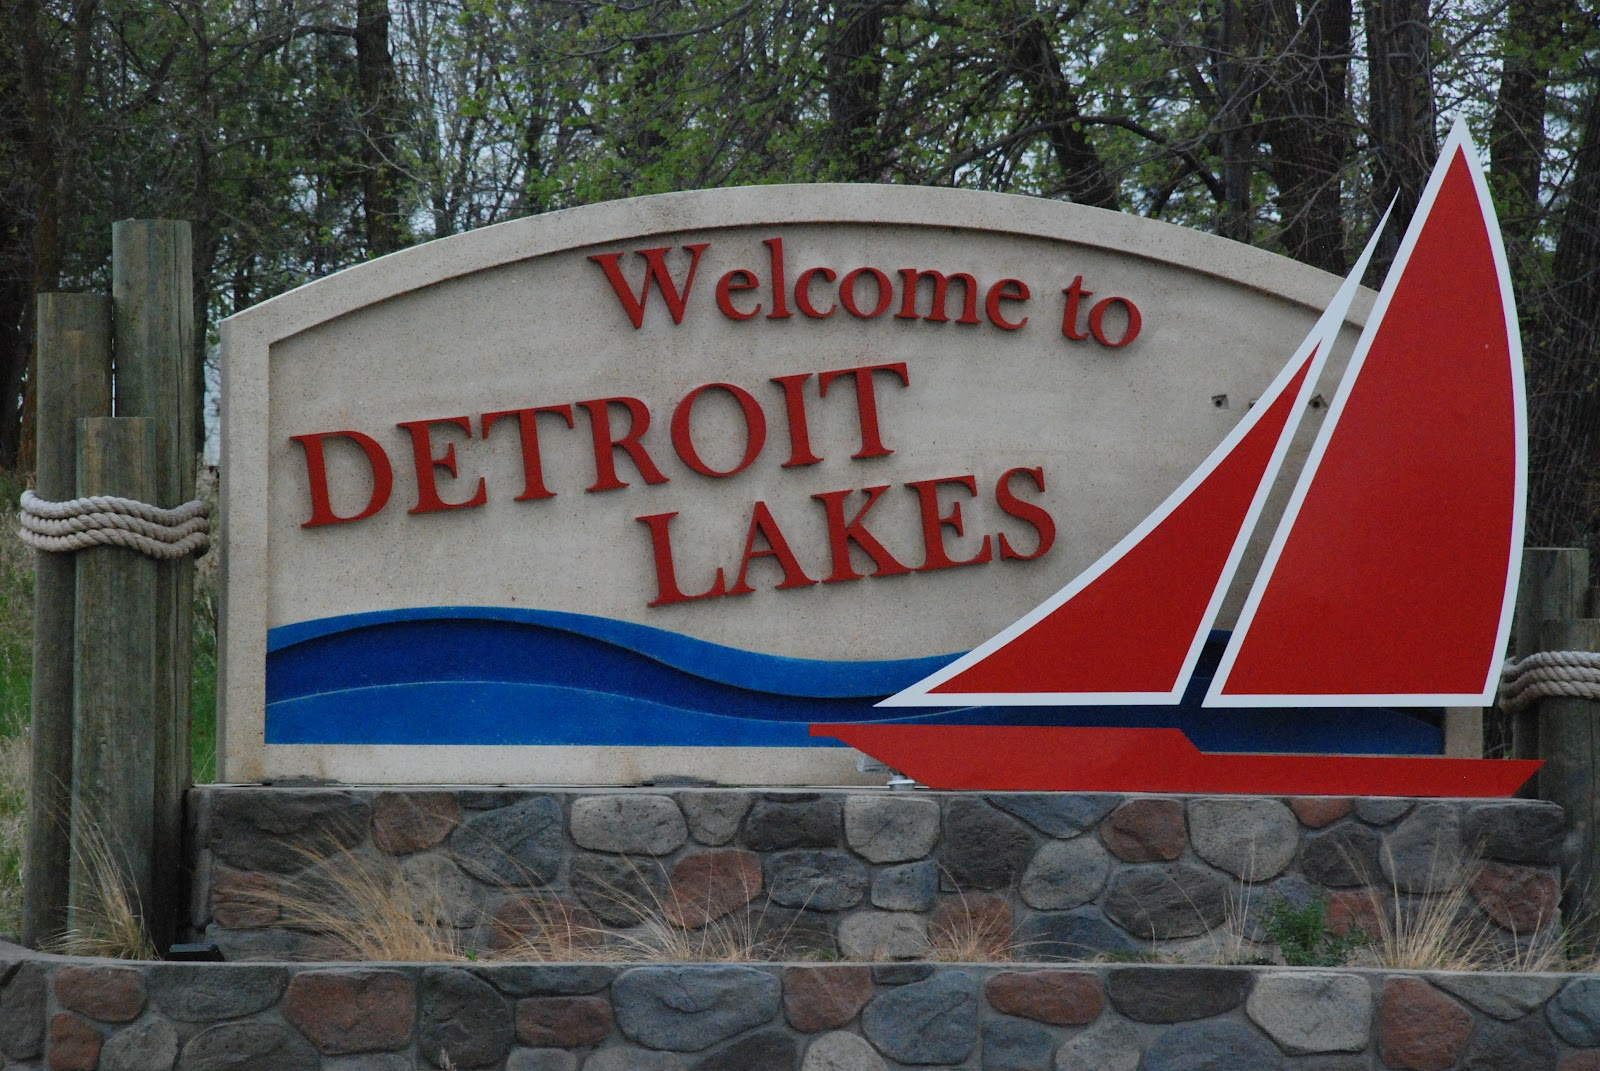 detroit lakes Find detroit lakes, mn real estate for sale today, there are 314 homes for sale in detroit lakes at a median listing price of $294,000.